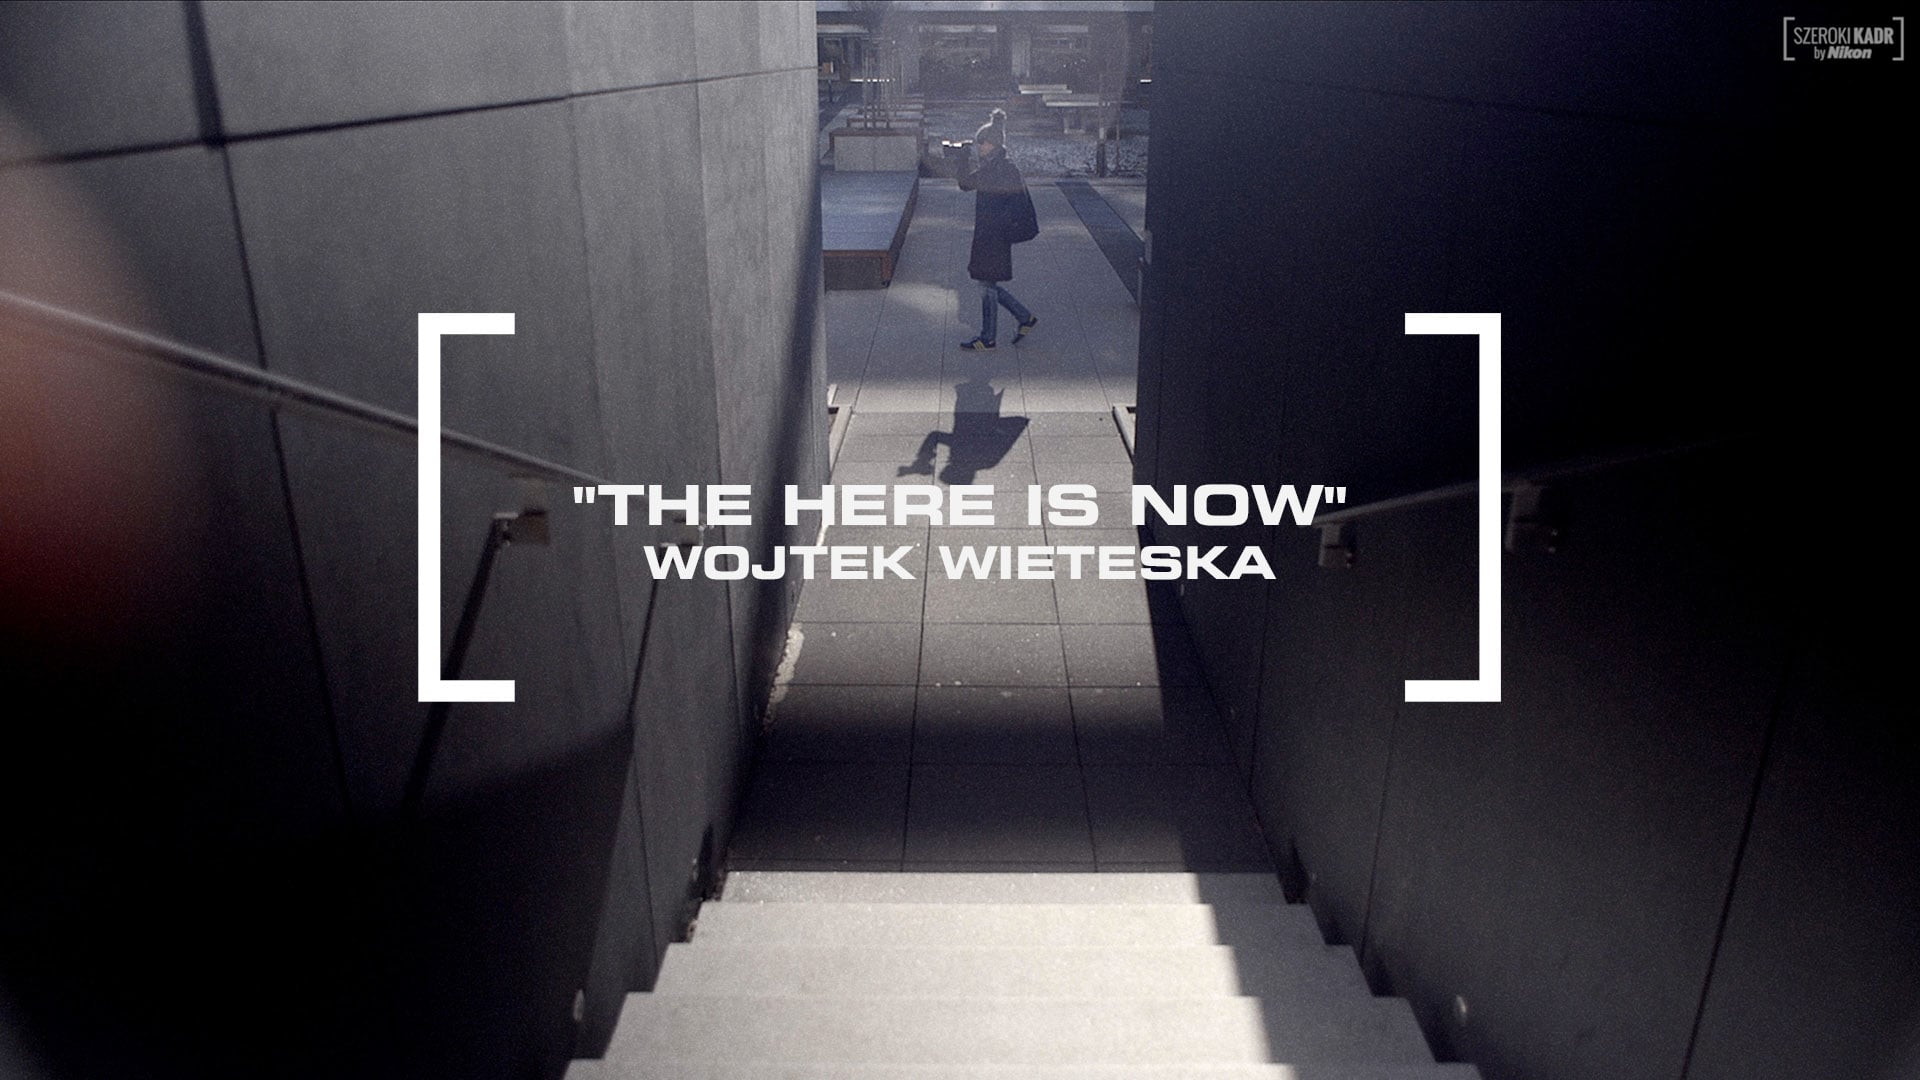 THE HERE IS NOW